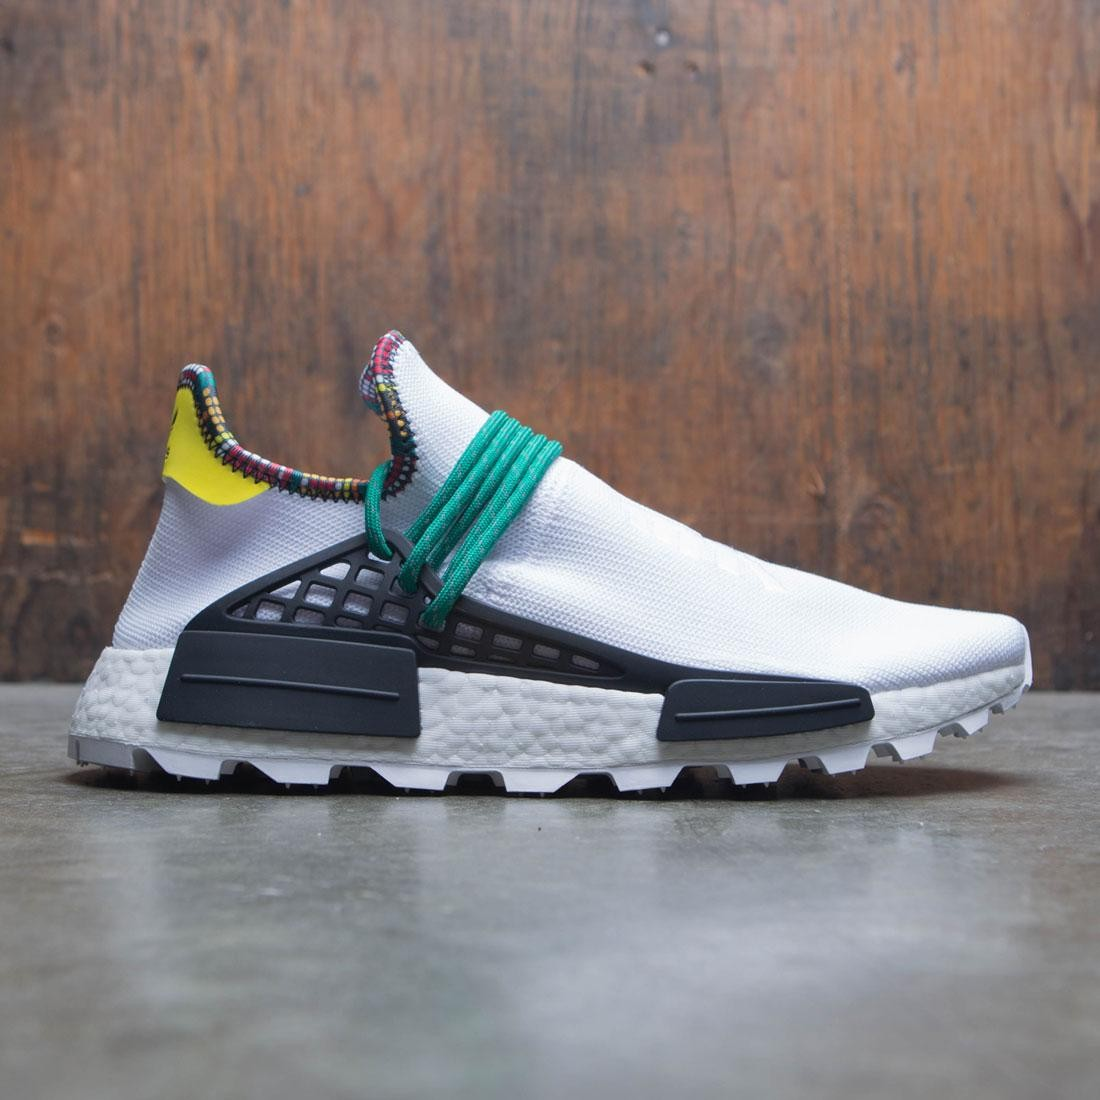 meet 4c544 f3c34 Adidas x Pharrell Williams Men Solar HU NMD (white / cloud white / bold  green / bright yellow)